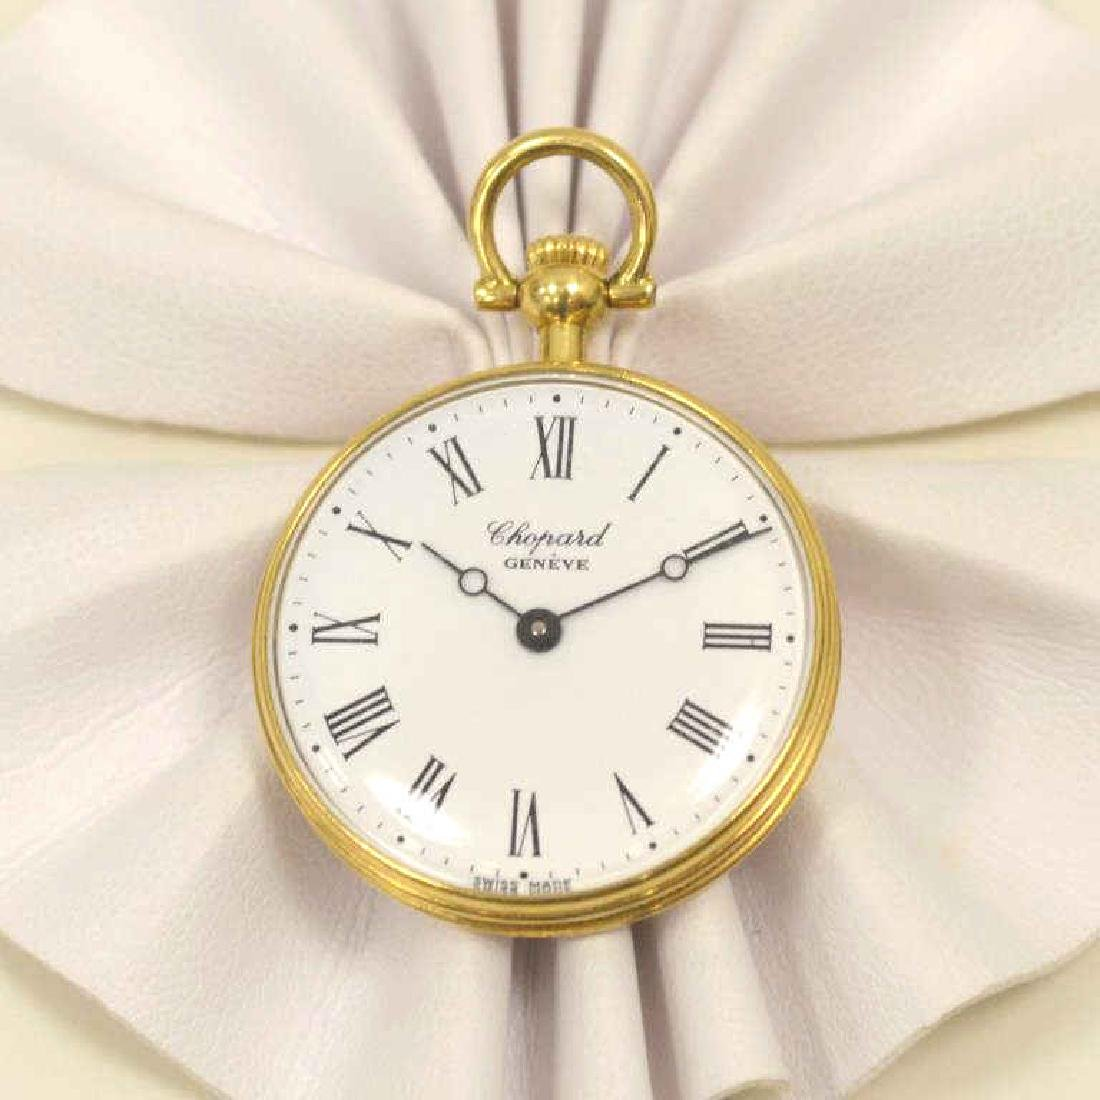 18kt yellow gold Chopard pocket watch